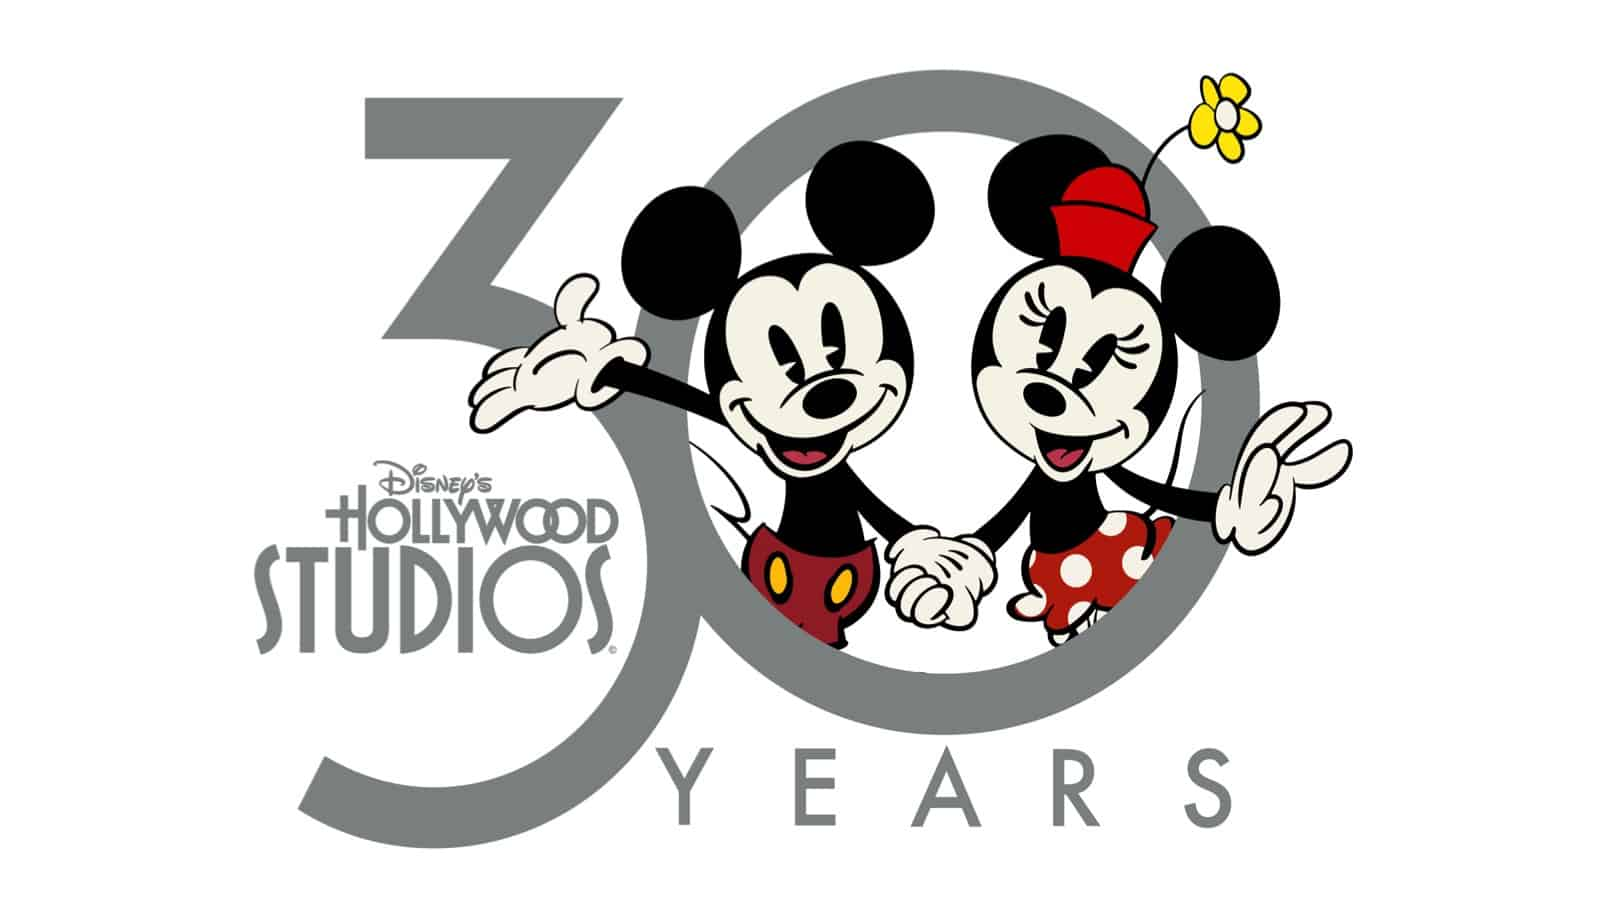 30th anniversary of Disney's Hollywood Studios